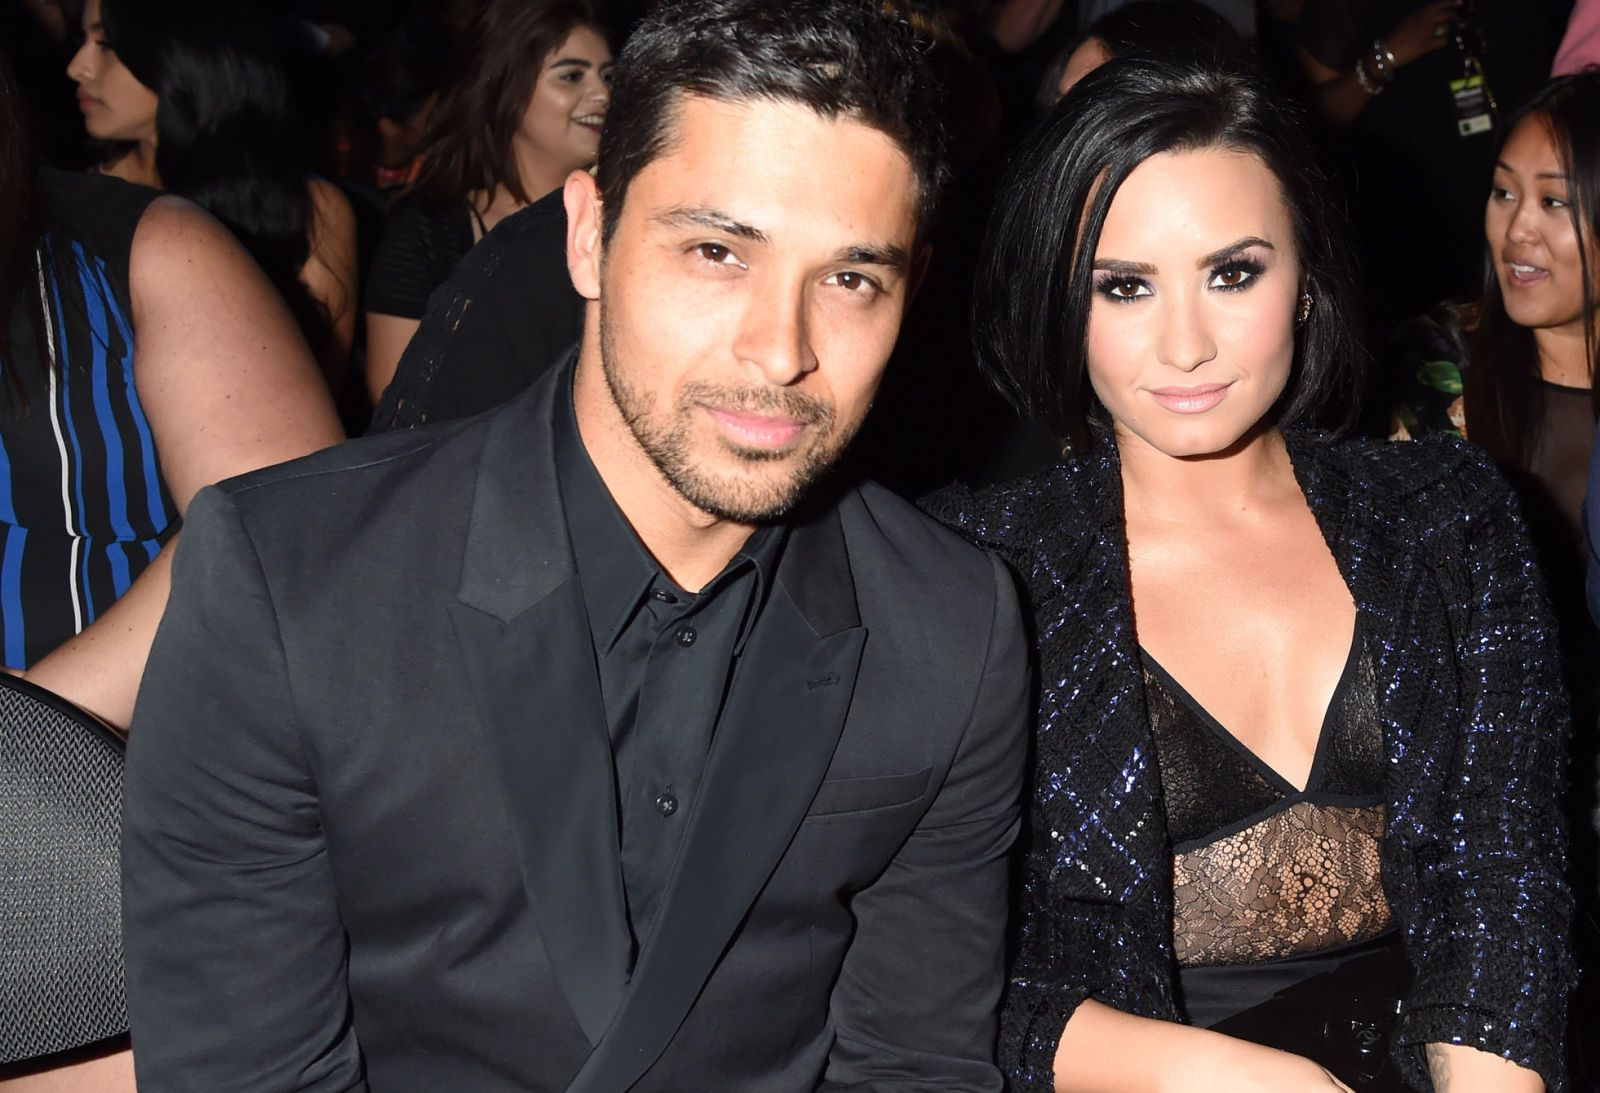 Is demi lovato dating wilmer